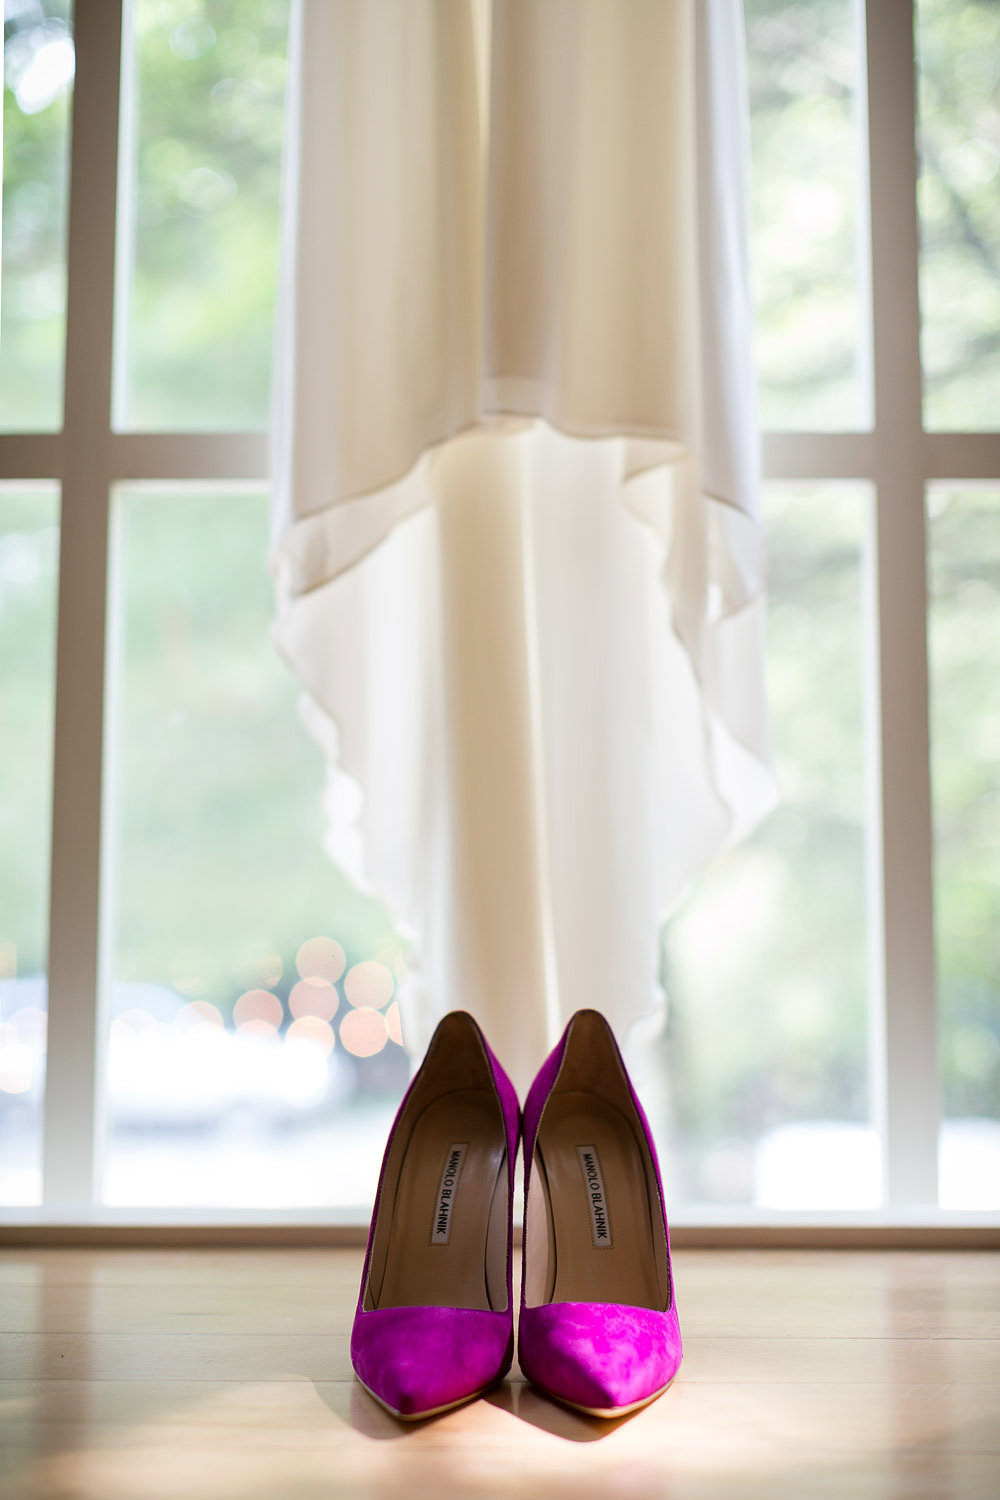 Magenta Manolo Blahnik pumps lined up under a silk wedding dress hung in a window